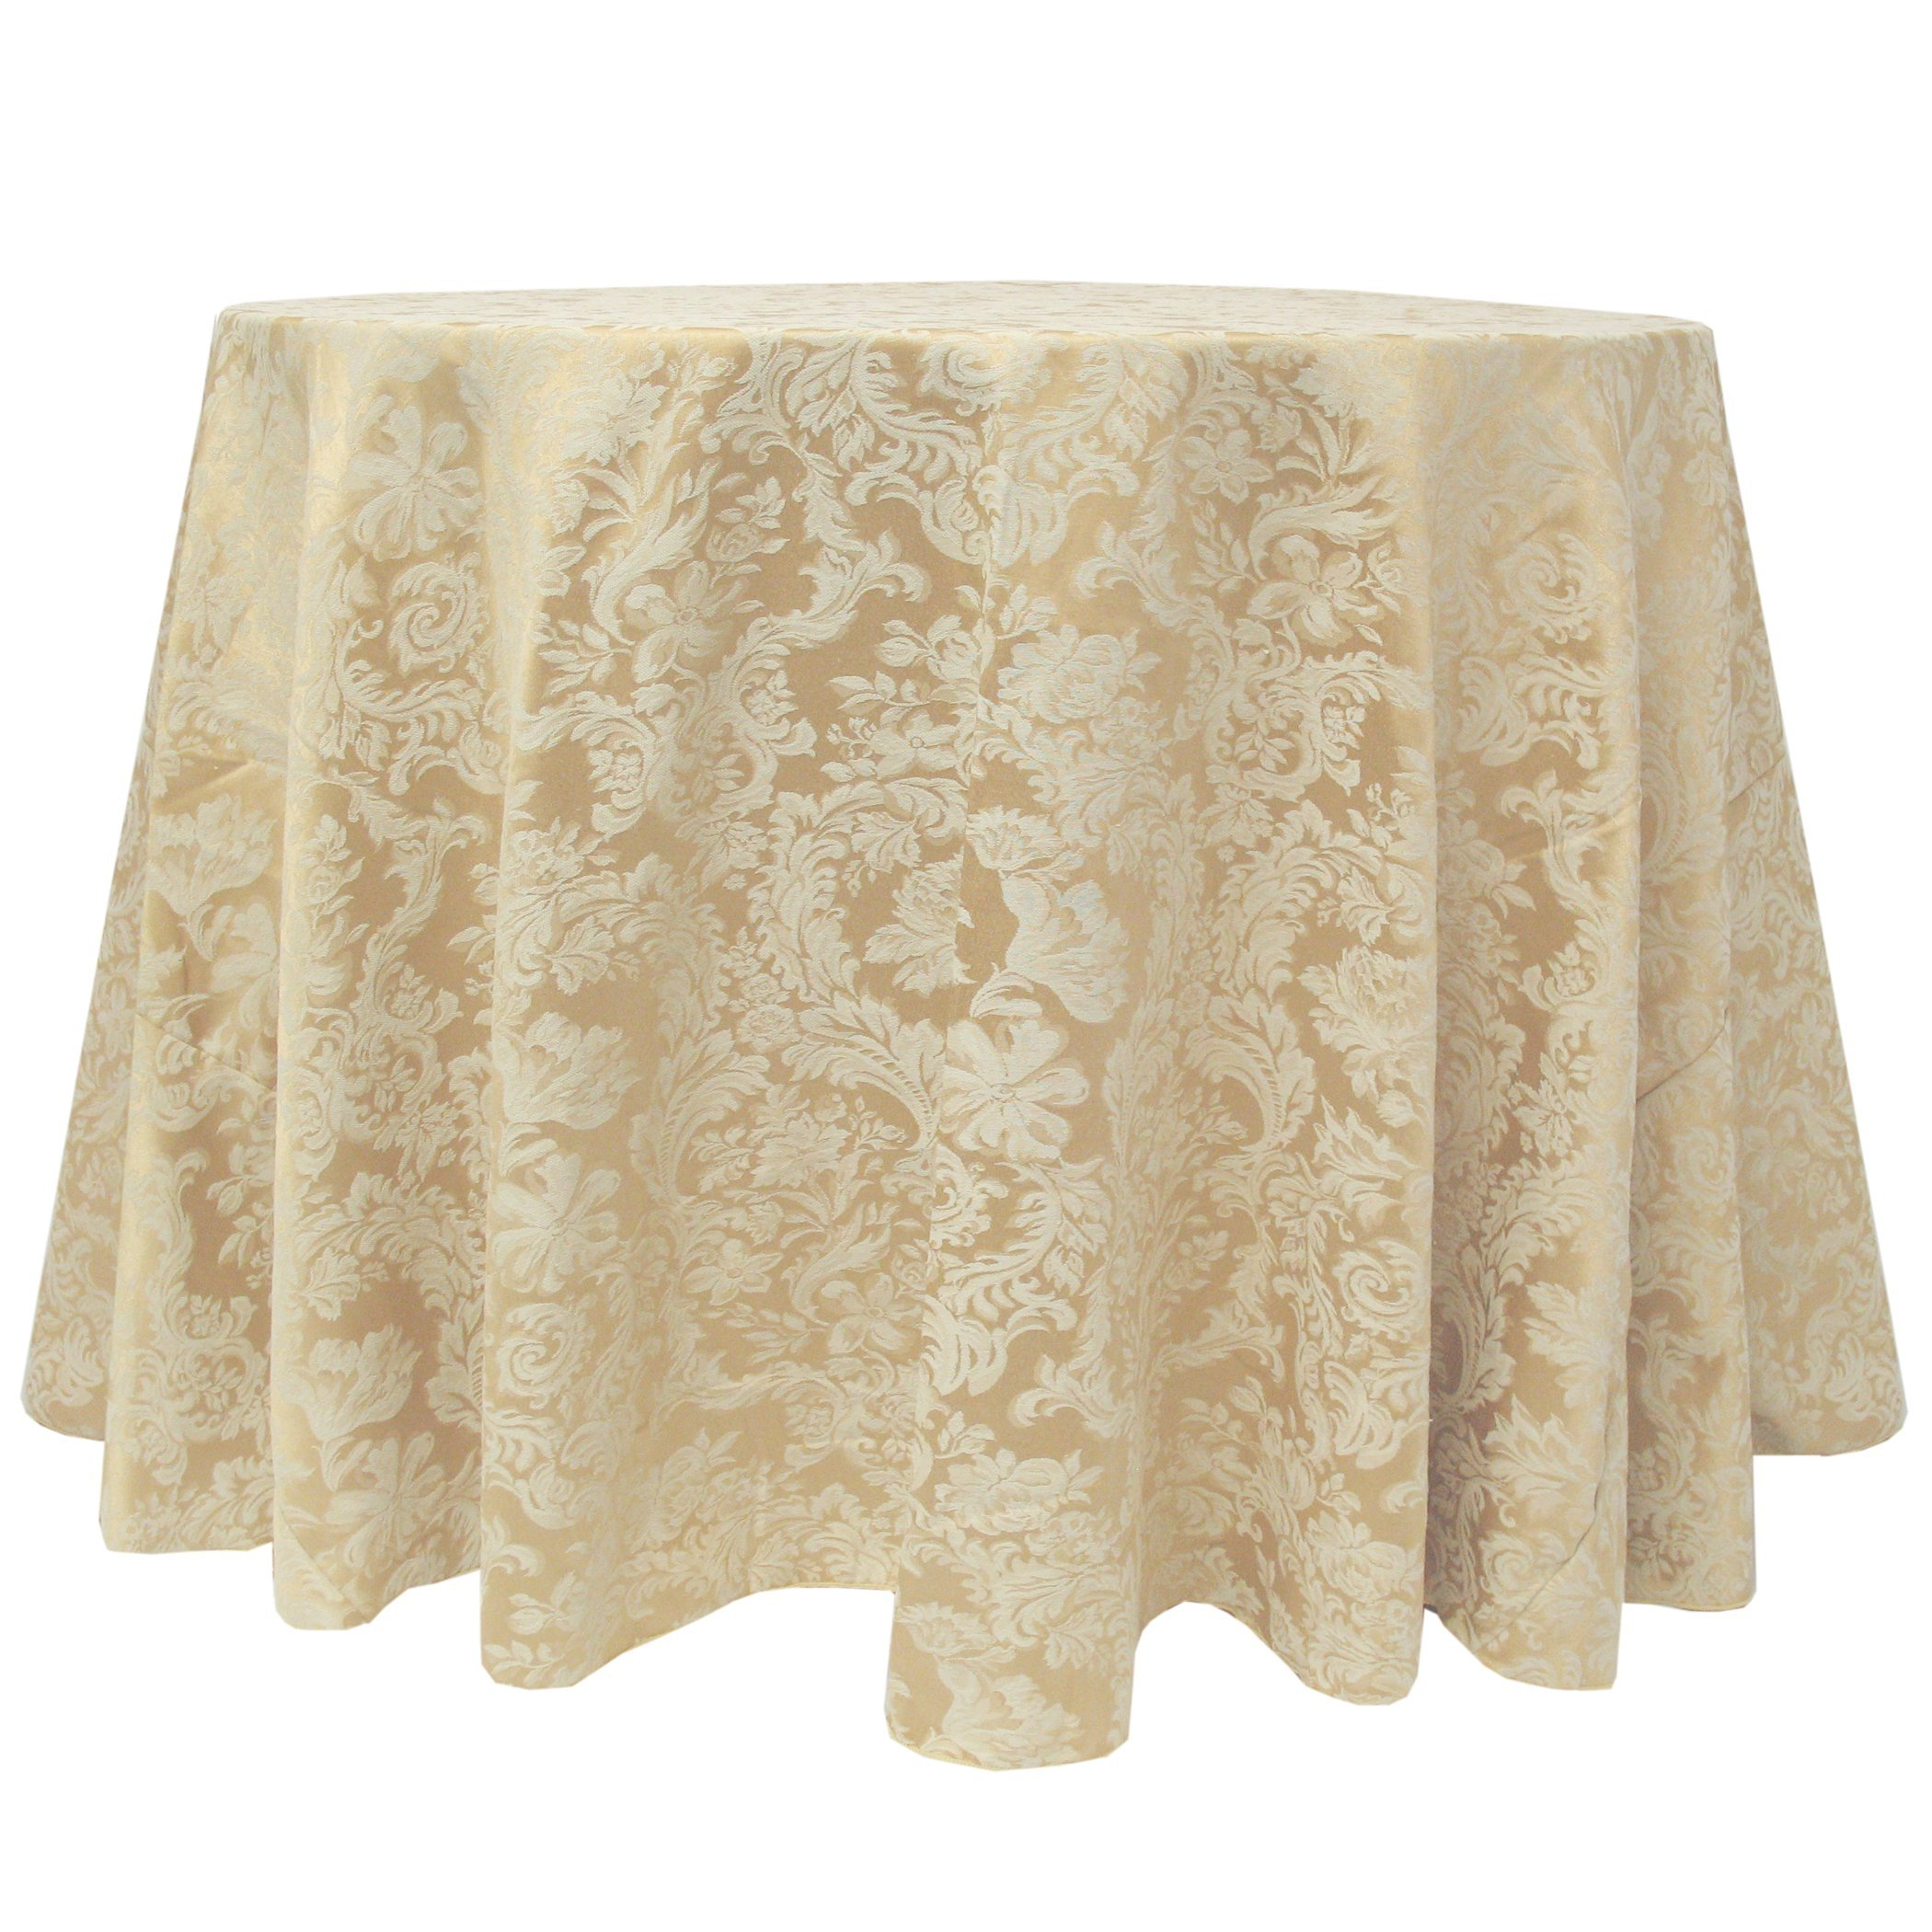 Ultimate Textile (5 Pack) Miranda 60-Inch Round Damask Tablecloth - Jacquard Weave, Champagne Ivory Cream